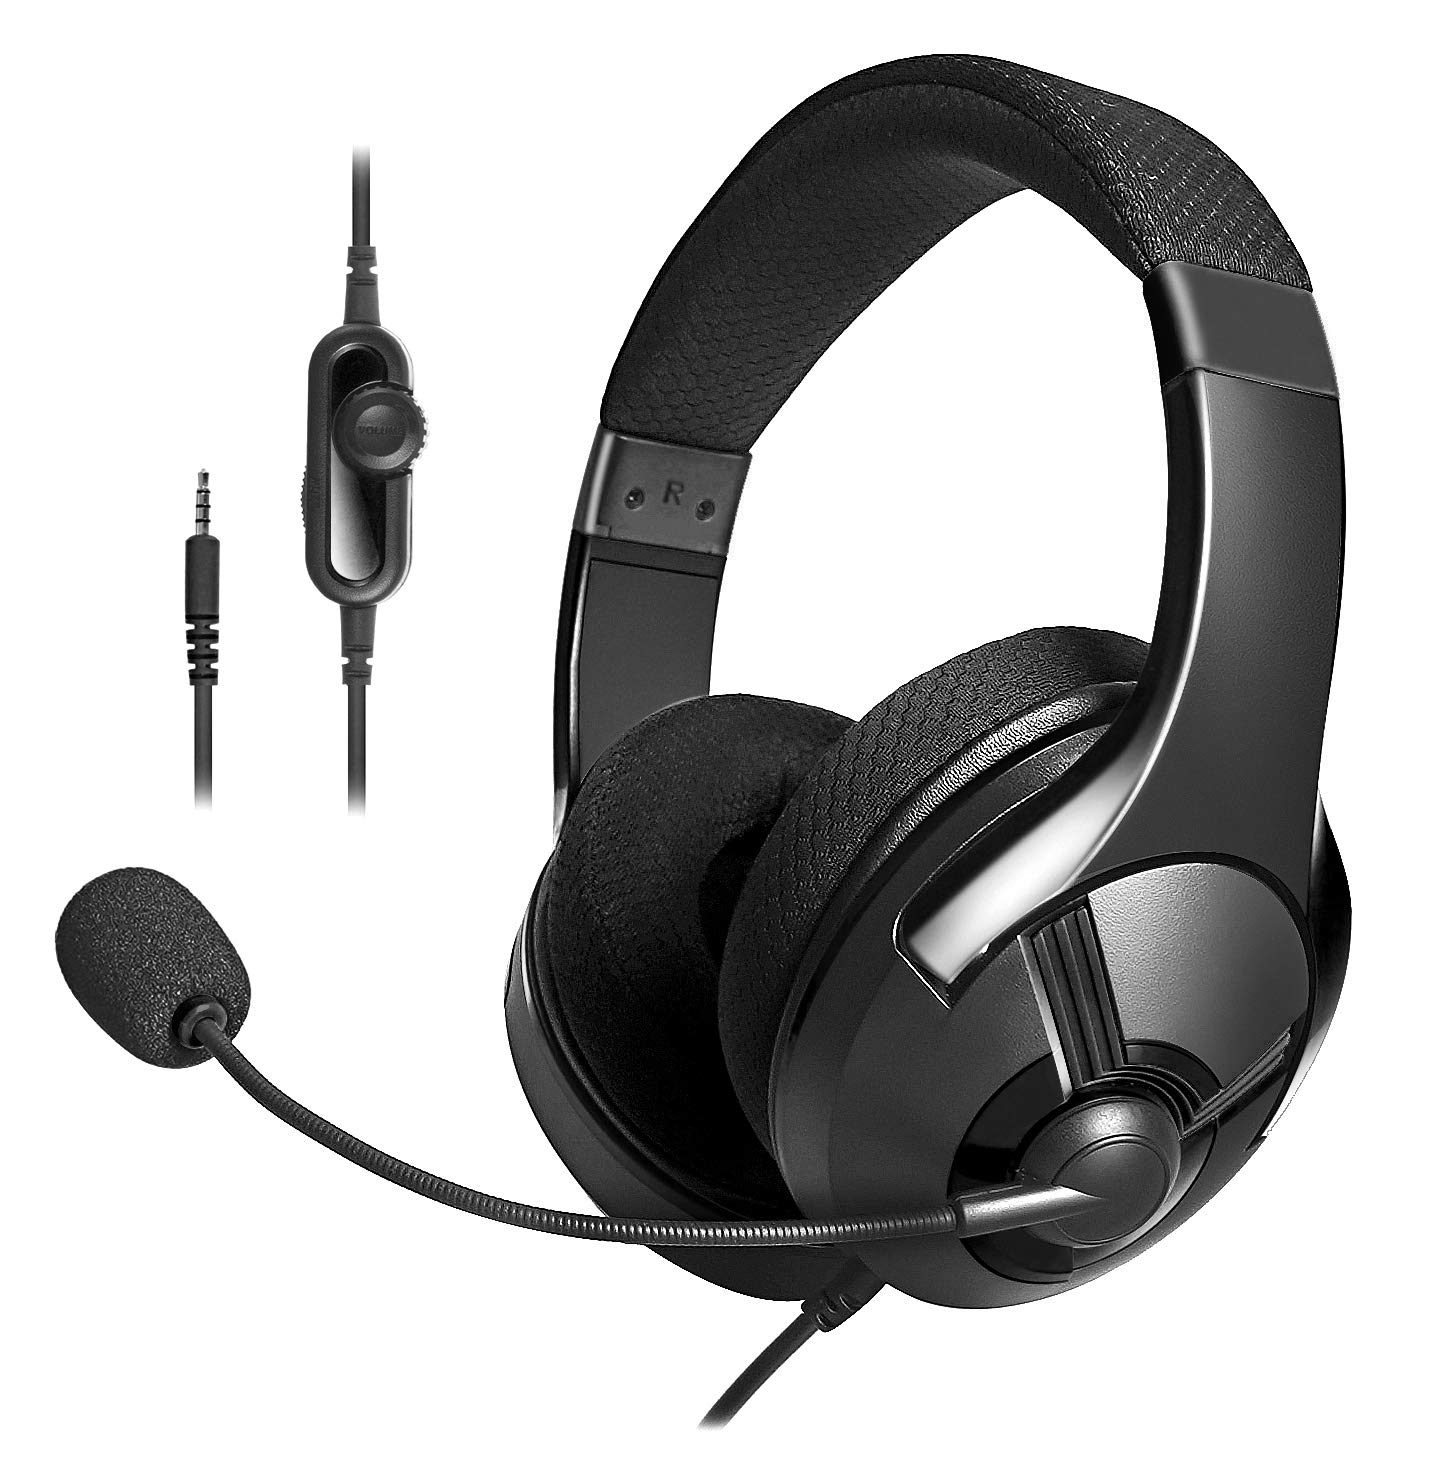 Amazon Basics Gaming Headset - Black